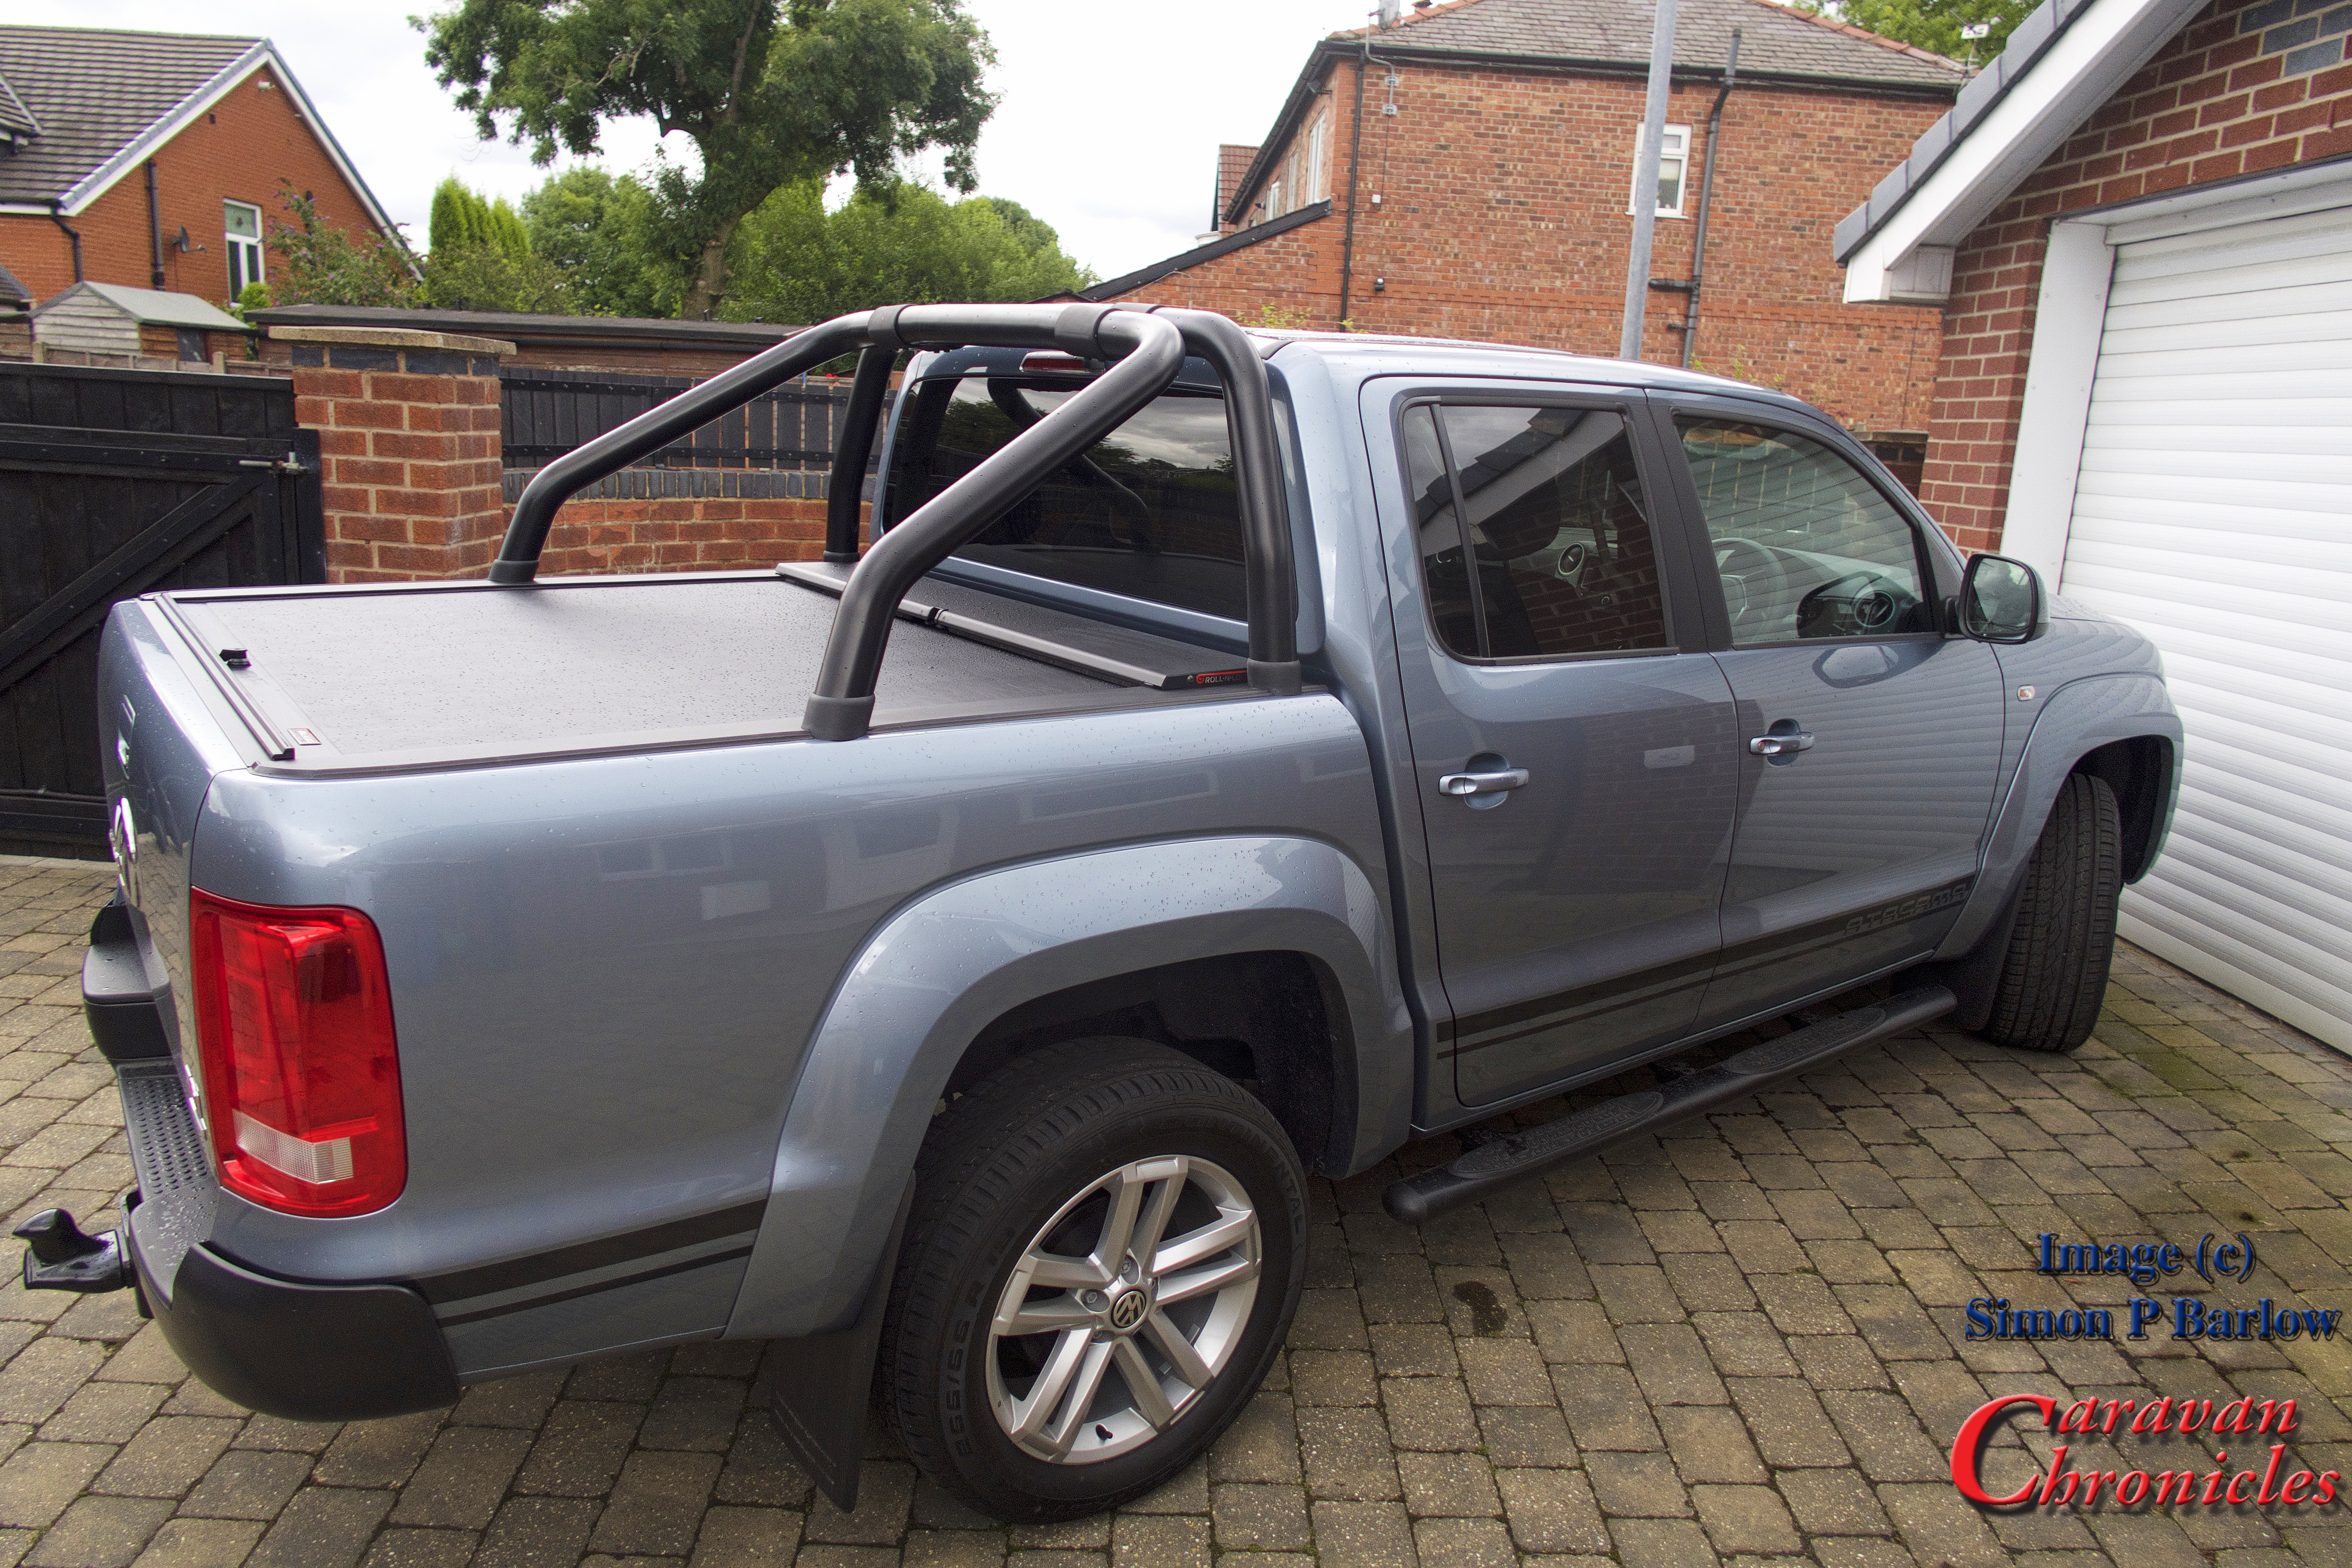 Vw Amarok 2 0 Petrol Engine Diagram Opinions About Wiring 2012 Tiguan Towing With The Caravan Chronicles Rh Caravanchronicles Com 2003 Volkswagen Passat 20 Parts